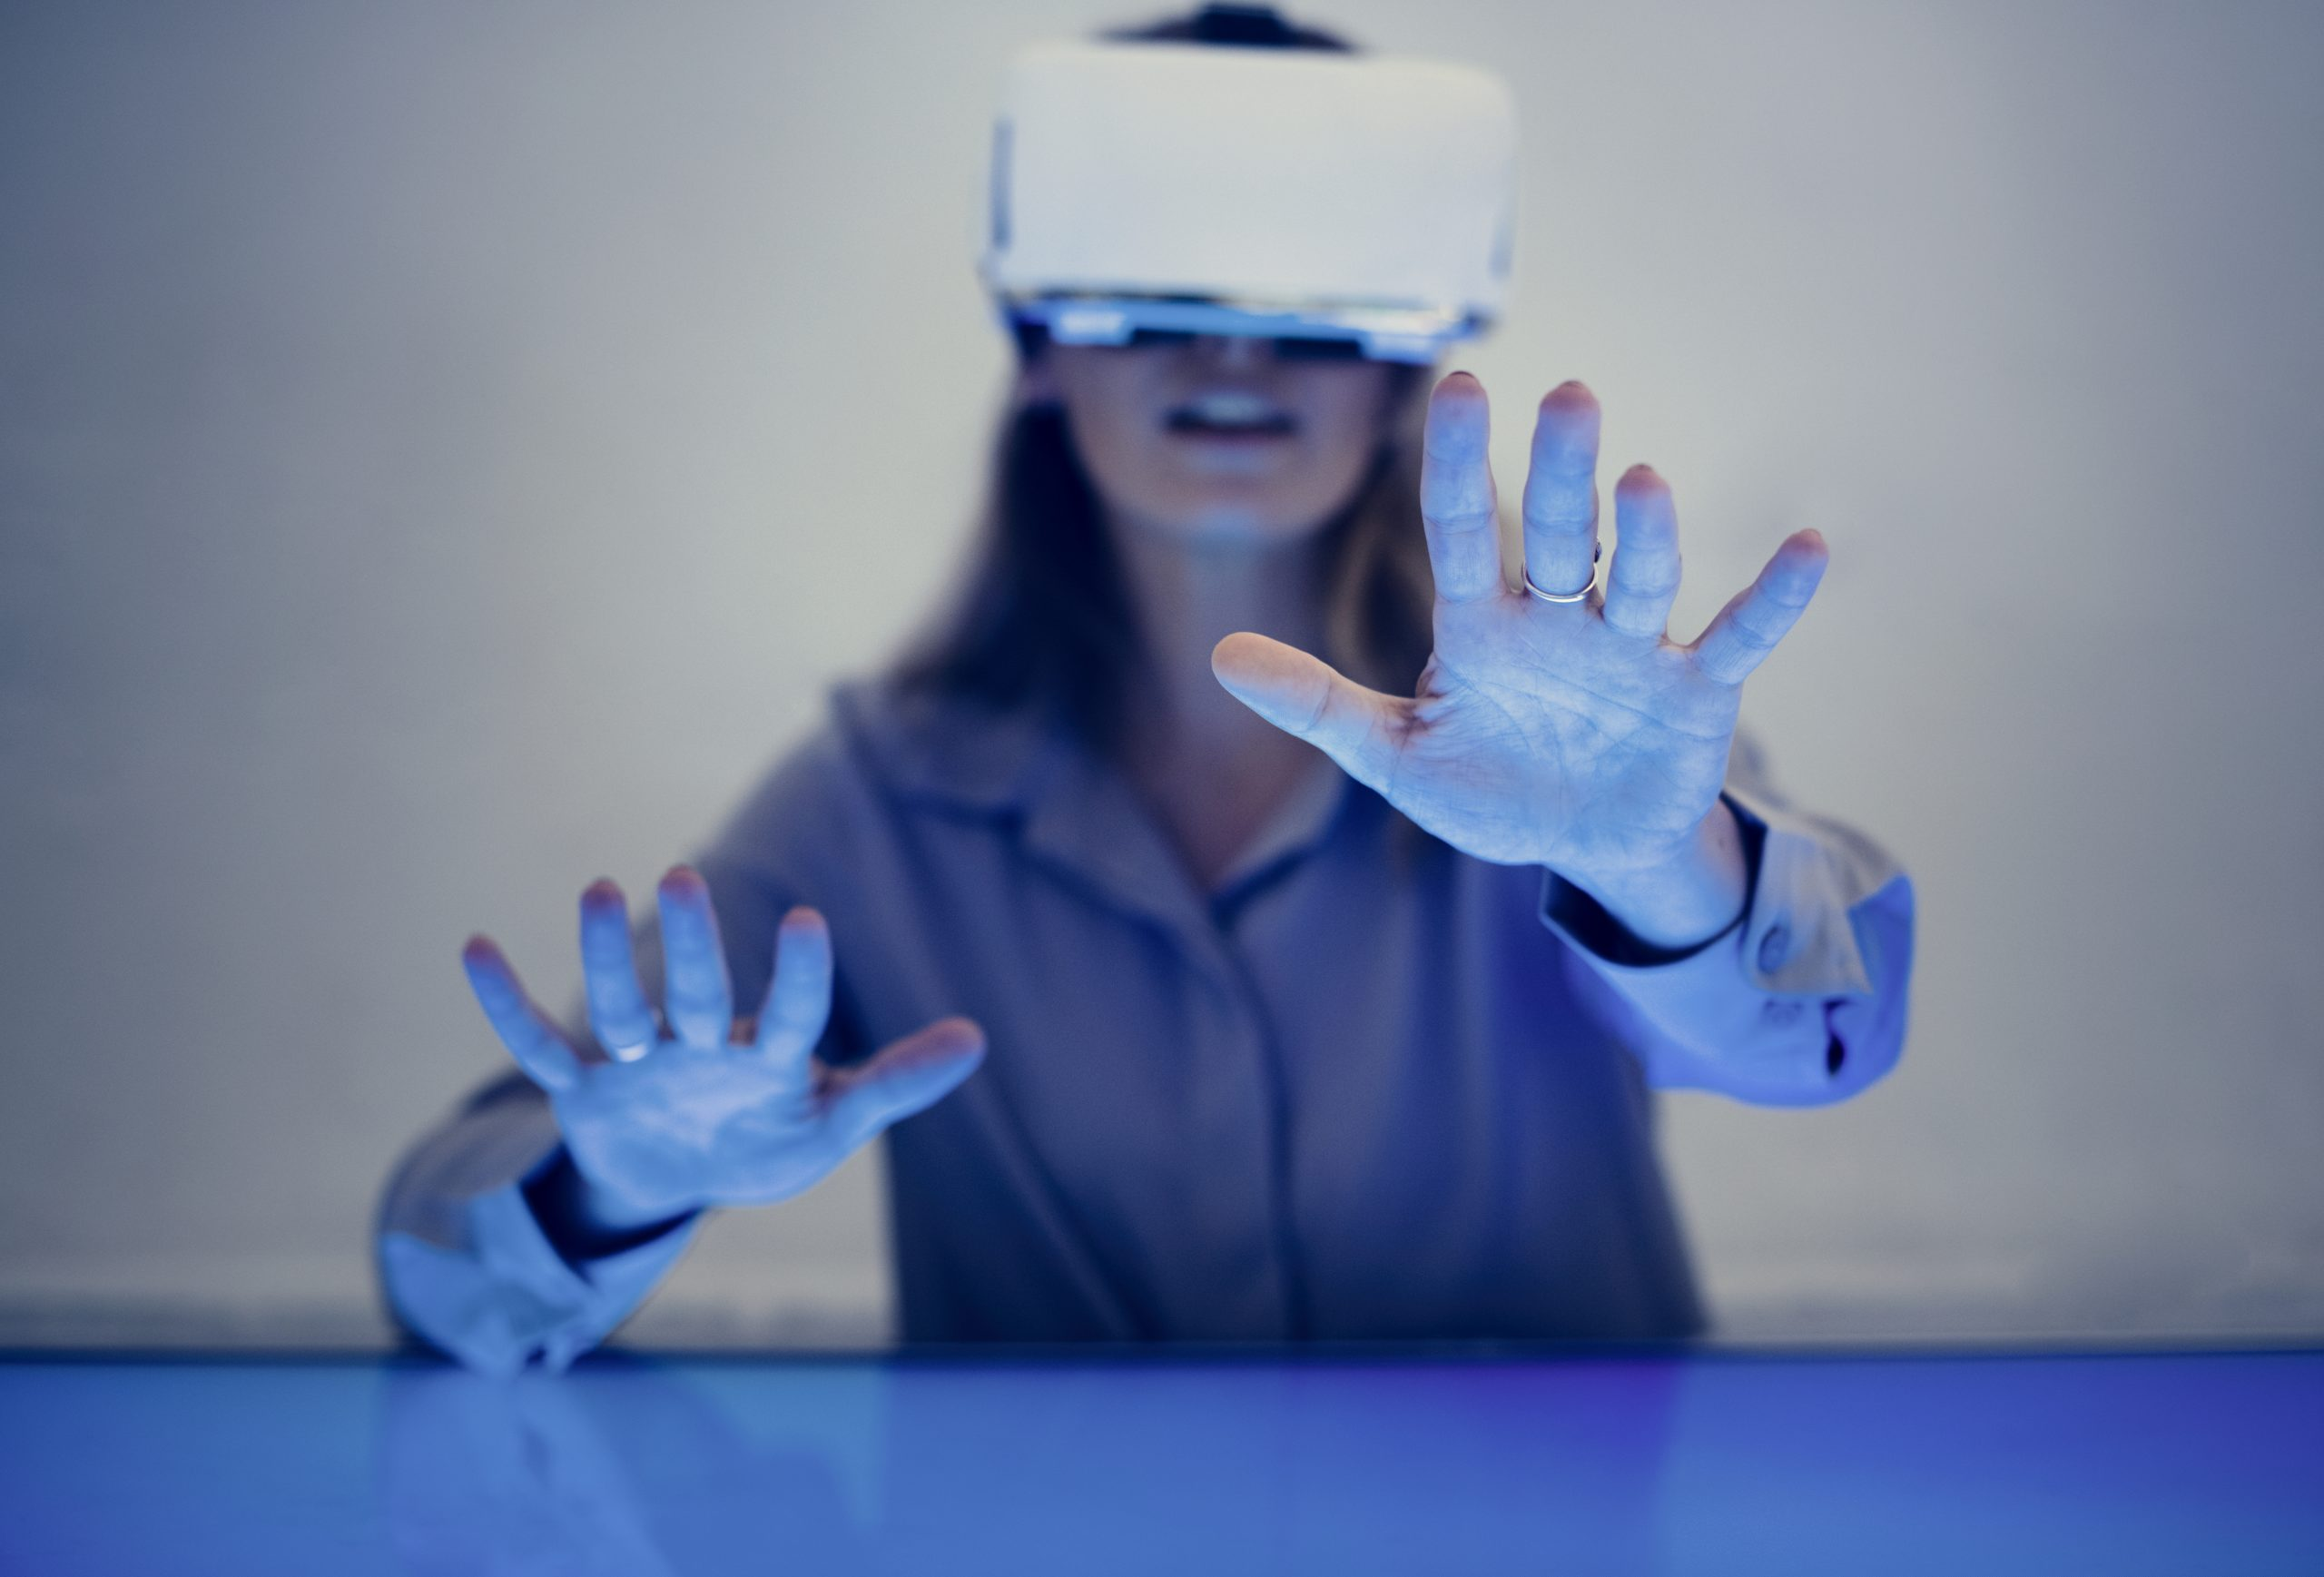 Learn more about how virtual reality goes hand in hand with architecture.